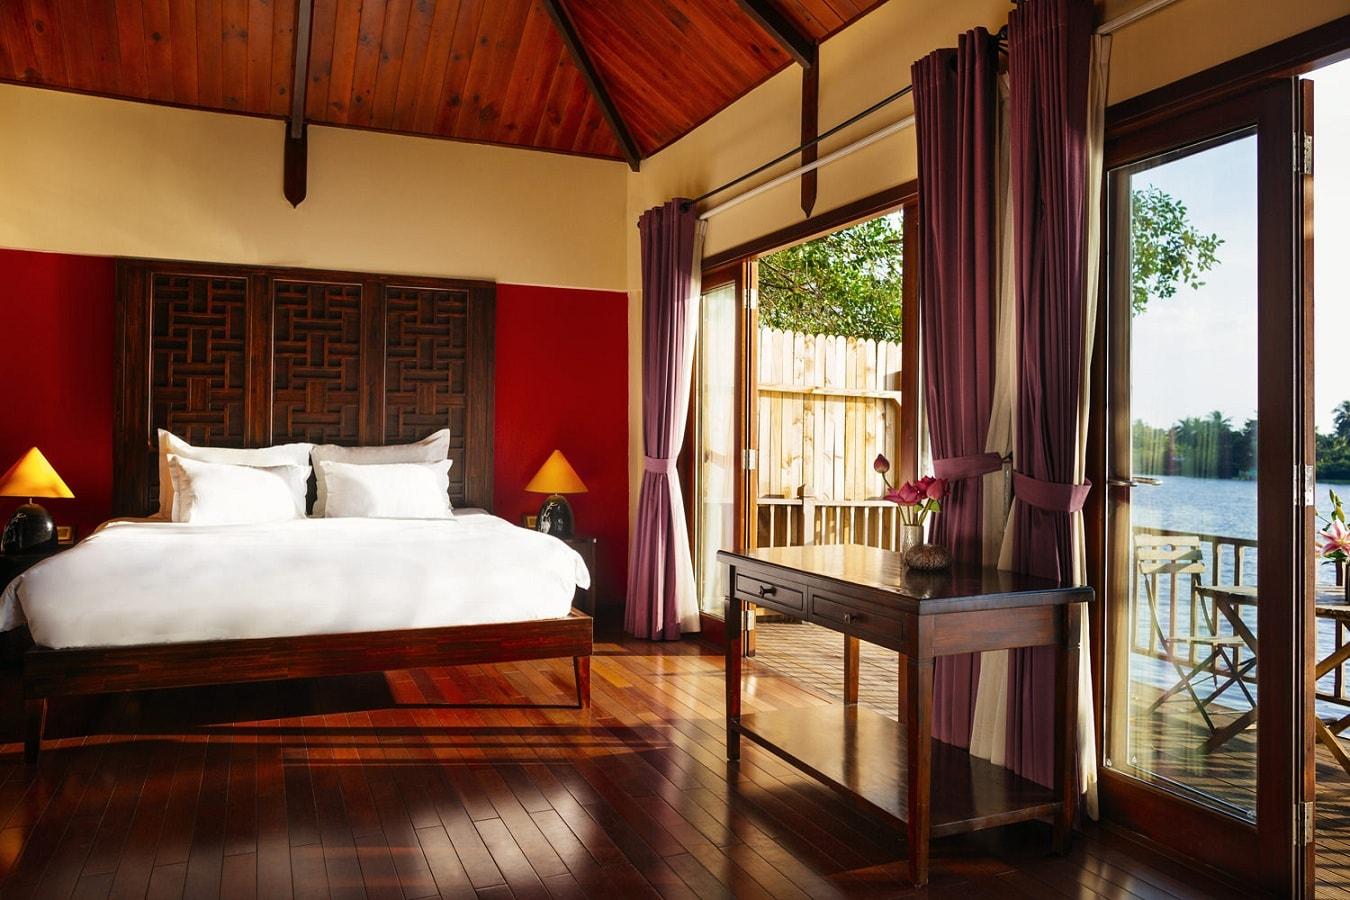 Each room is decorated with contemporary local touches, feature king bed, cold stone, rich warm wood, and private balcony